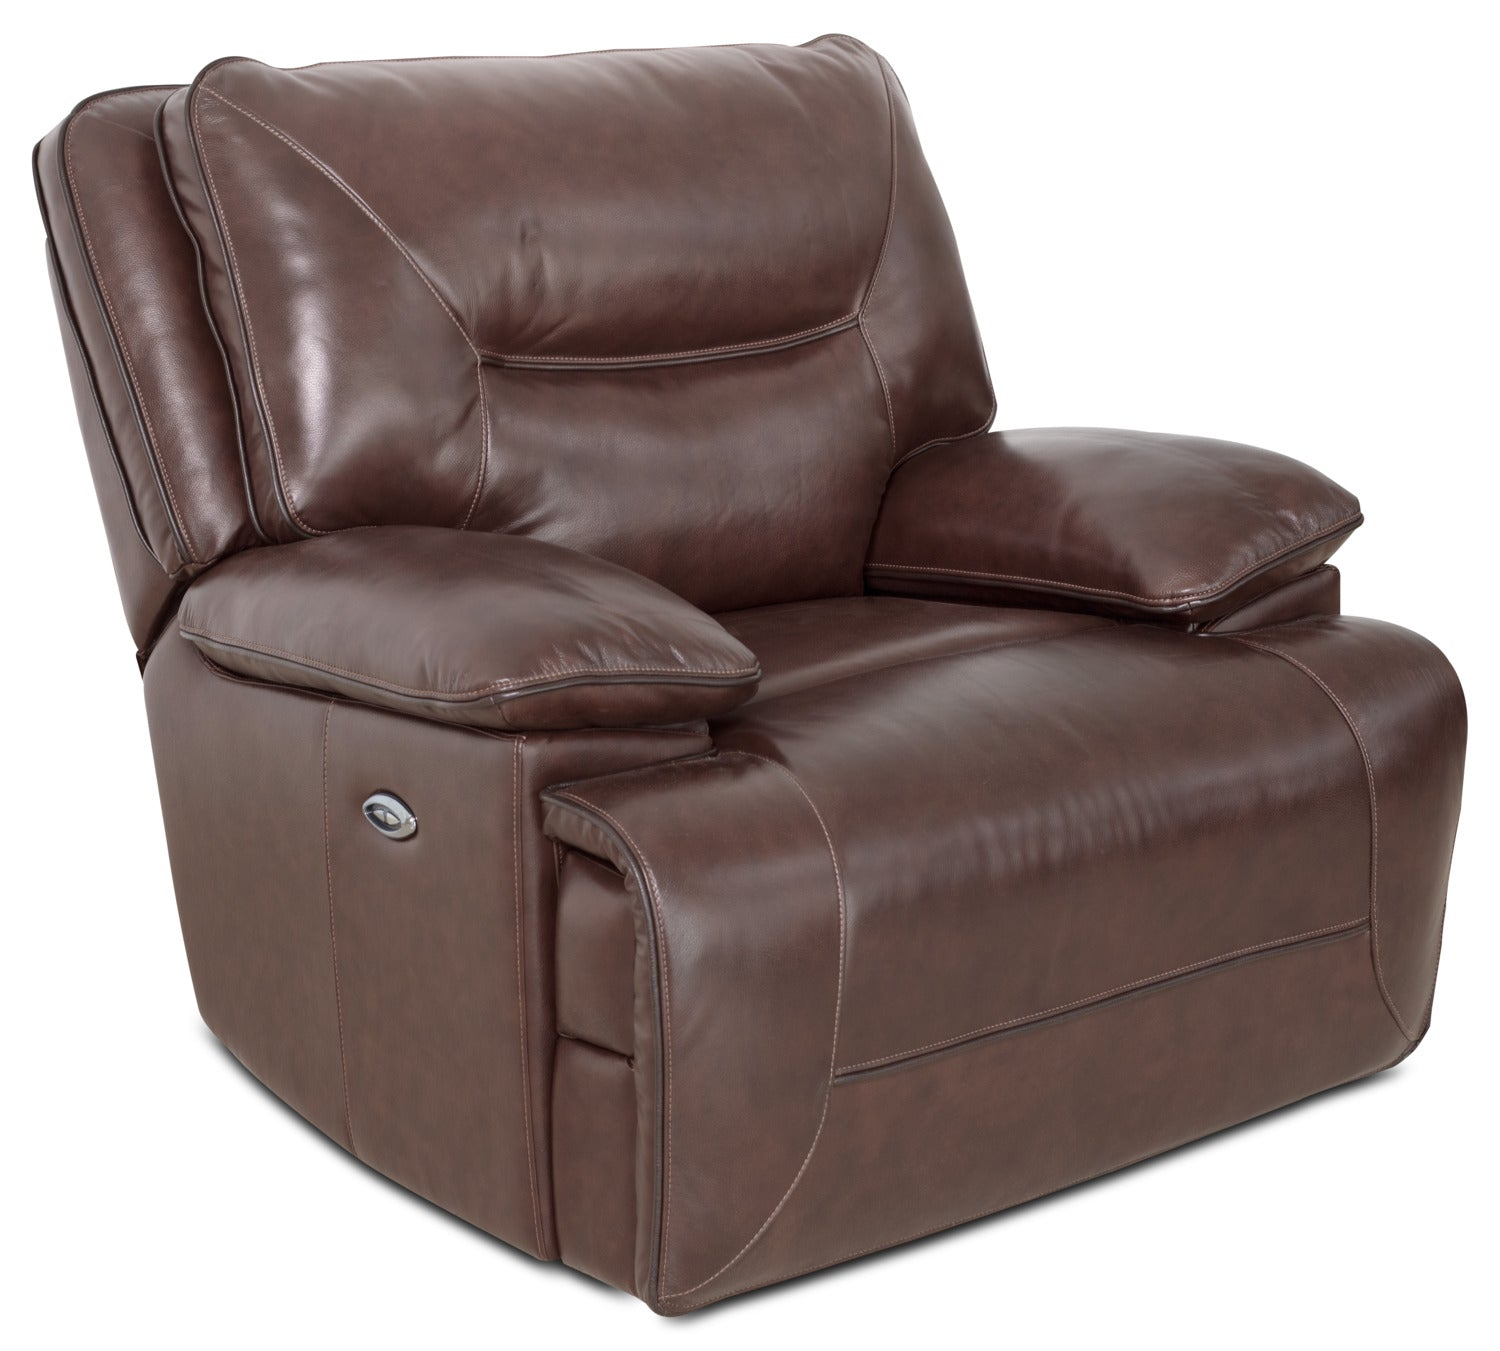 Beau Genuine Leather Power Reclining Chair U2013 BurgundyFauteuil à Inclinaison  électrique Beau En Cuir Véritable   Bourgogne